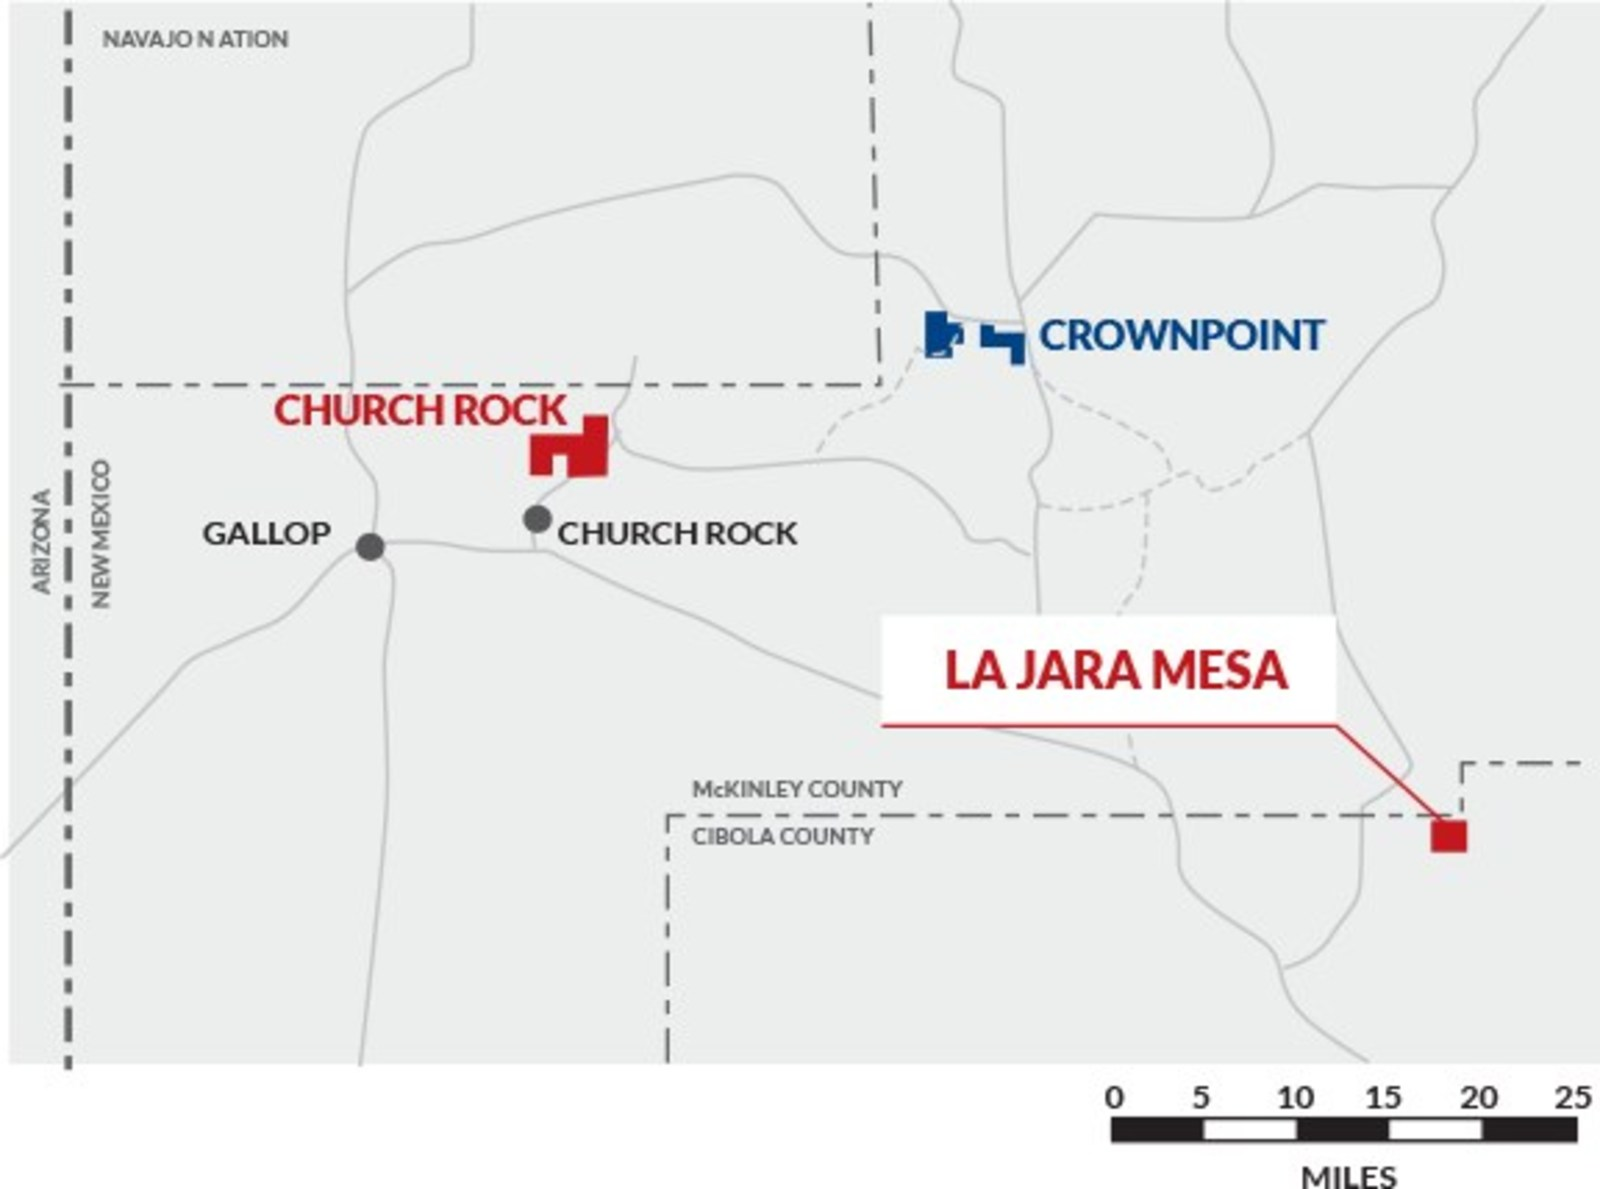 Figure 1: Laramide Resources Ltd. Projects in New Mexico, USA: Churchrock Uranium Project, Crownpoint Uranium Properties and La Jara Mesa Uranium Project.